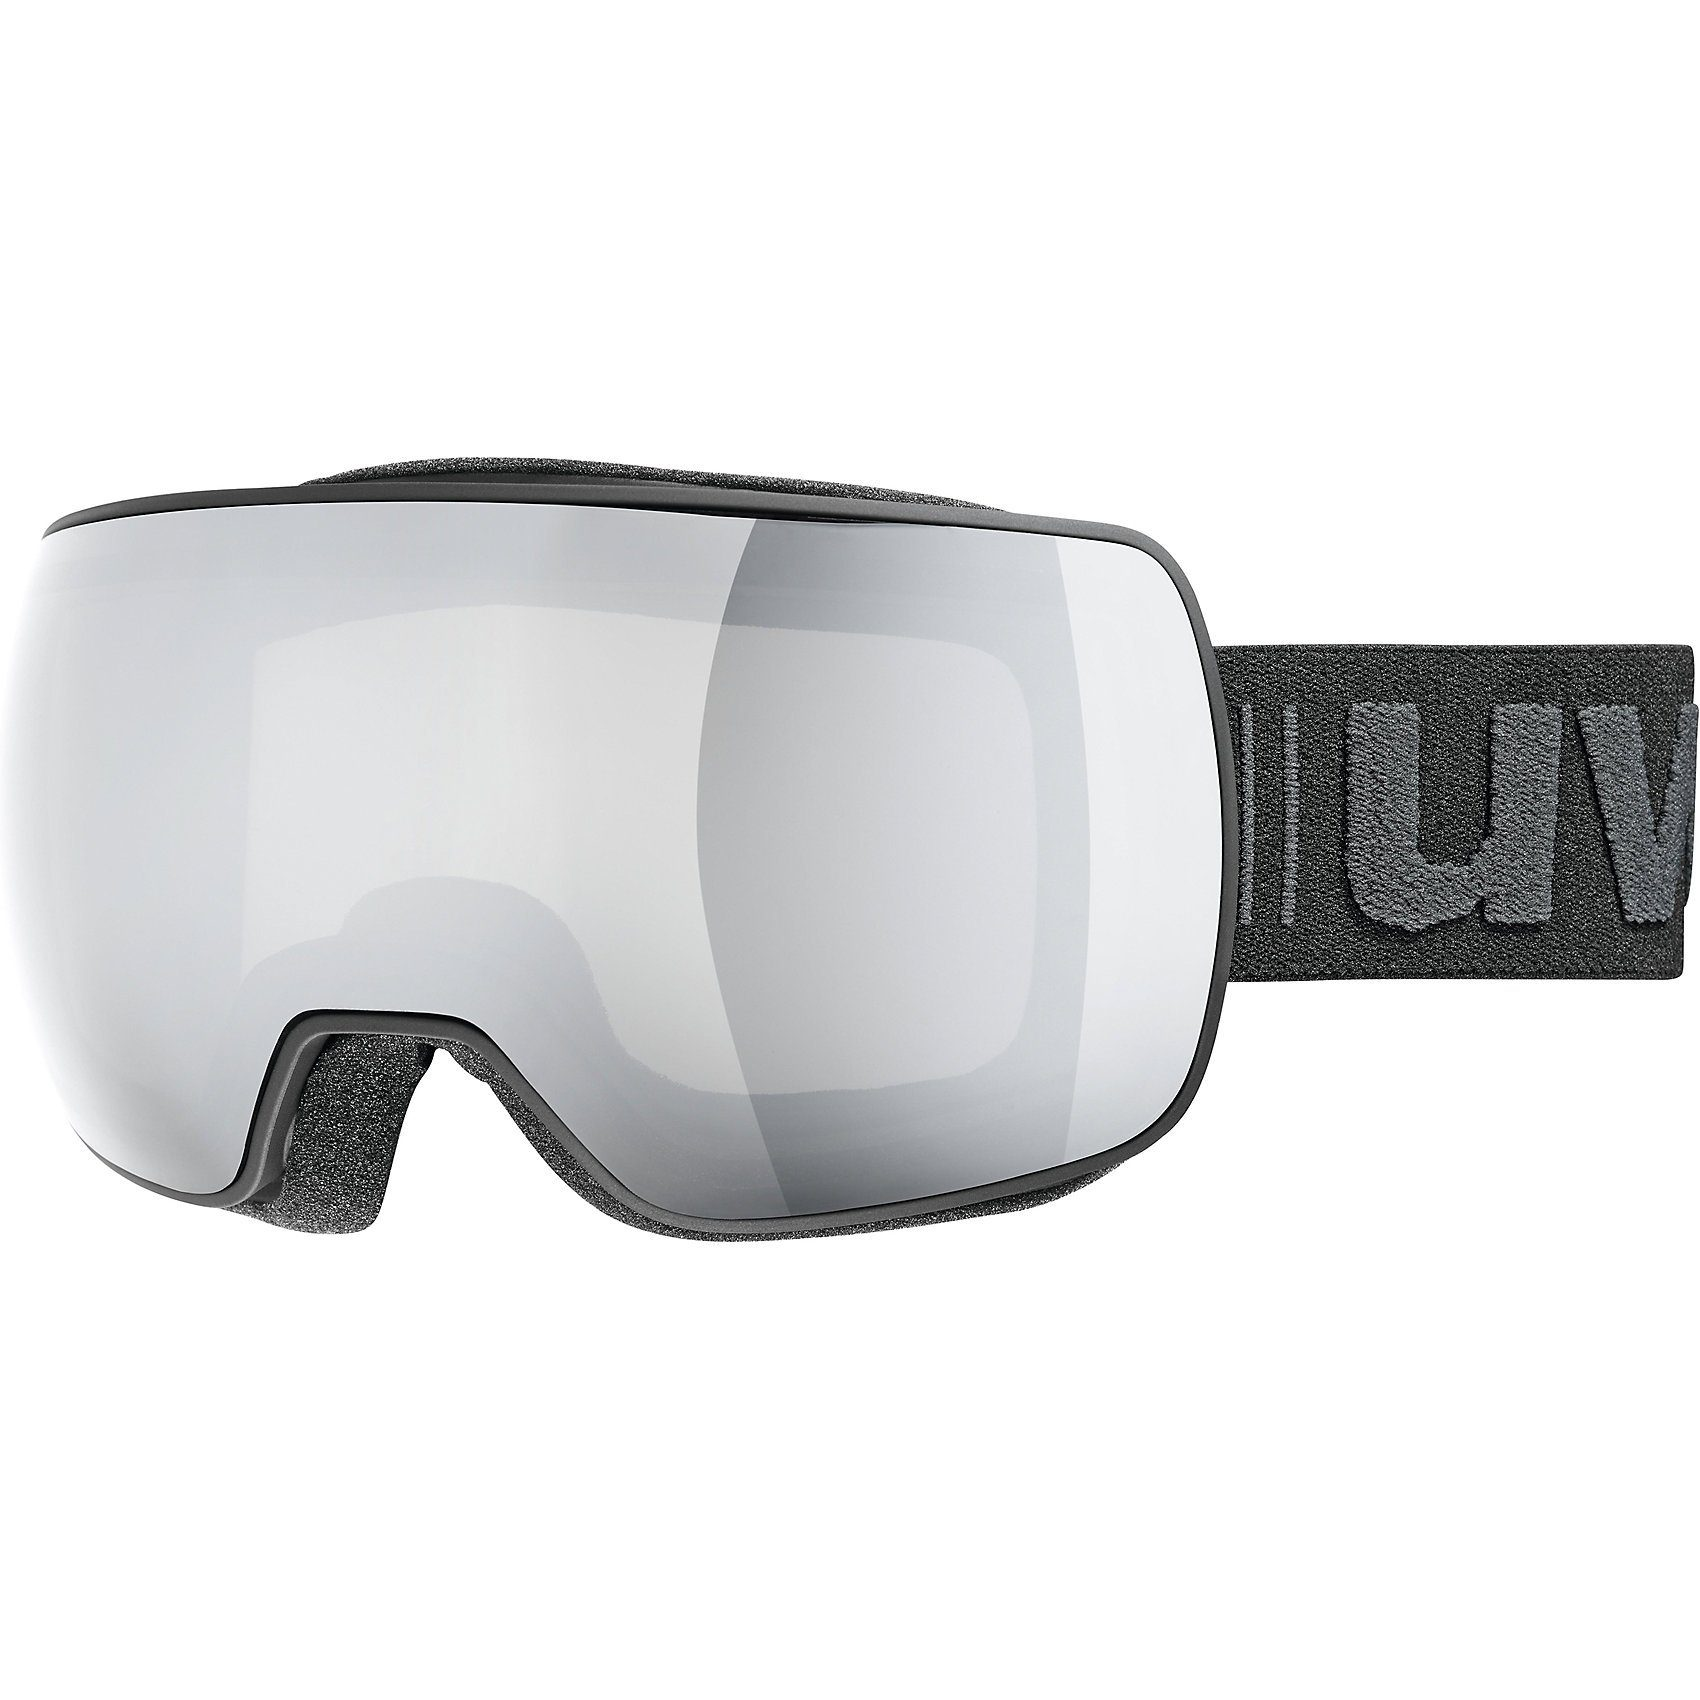 Uvex Skibrille compact LM, black mat dl/mirror silver